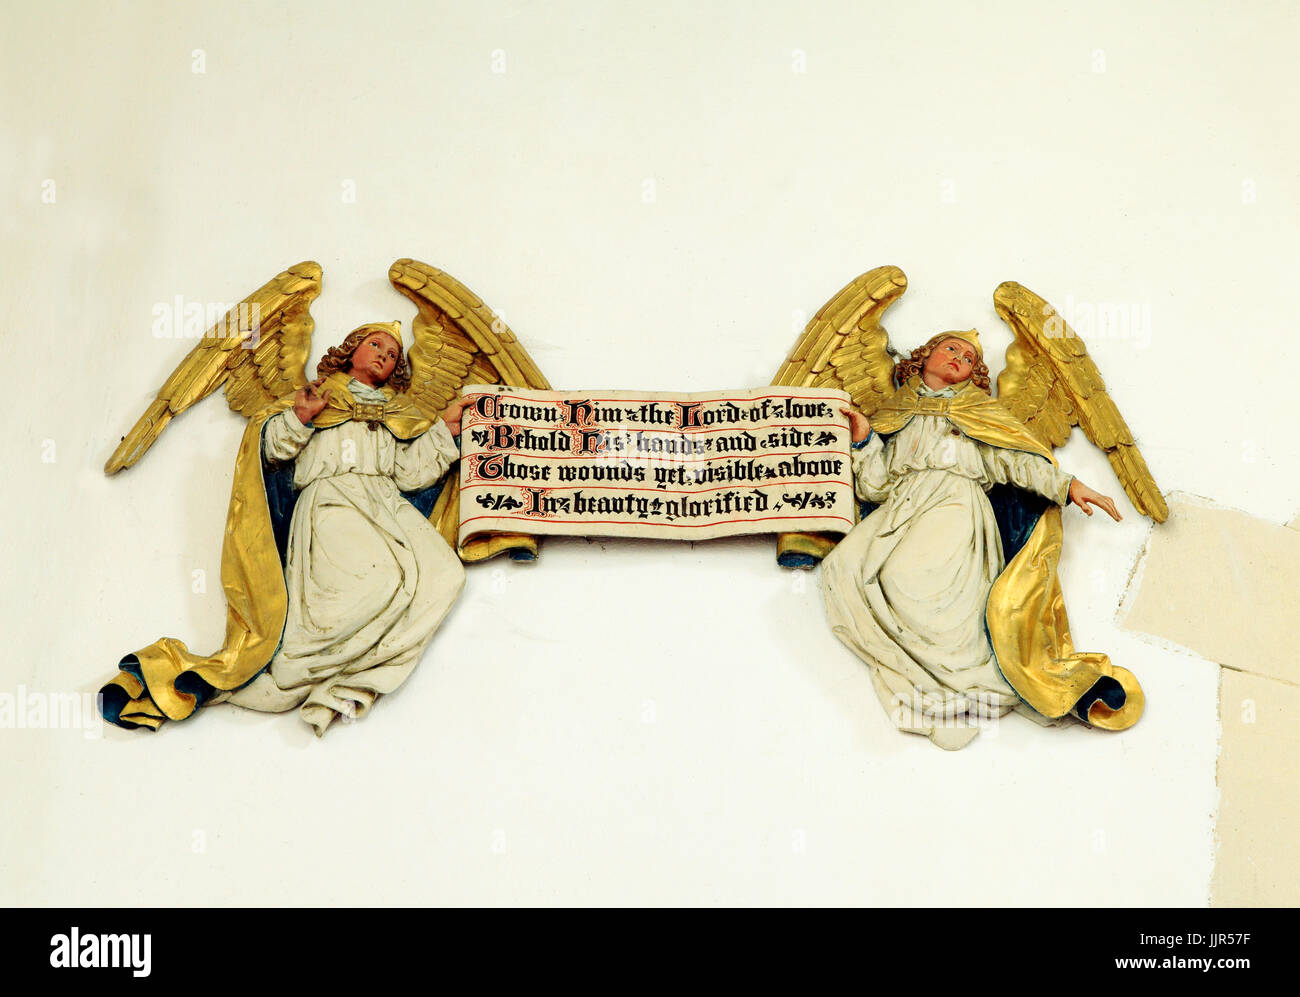 Gilded Angels, 'Crown Him The Lord Of Love', Hillington church, Norfolk, England, UK - Stock Image